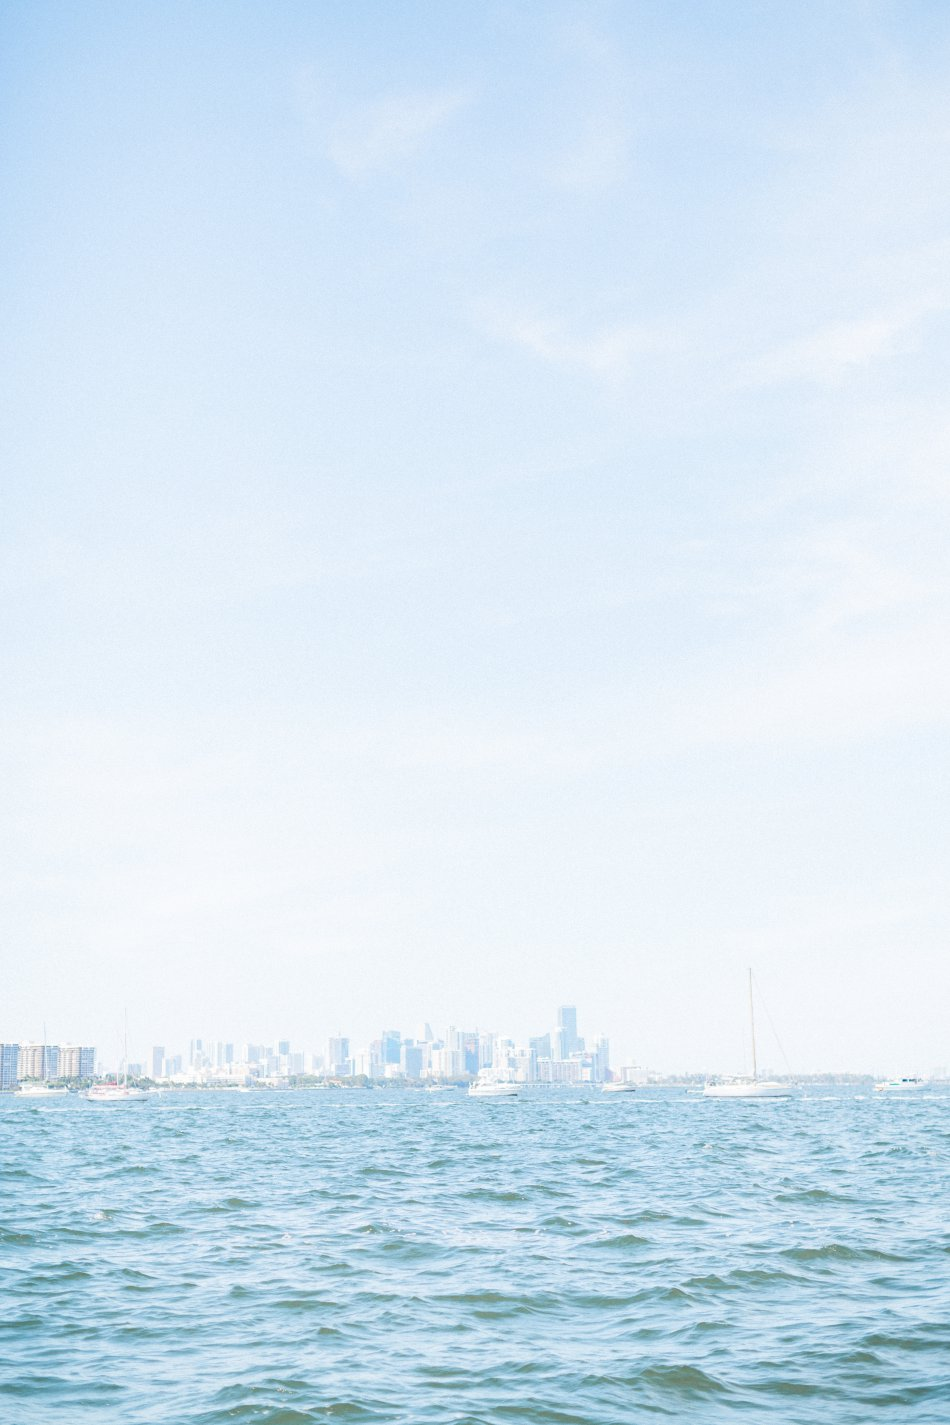 naples-luxury-sailing-engagement-photography-nautical-sailboat-engagement_1057.jpg